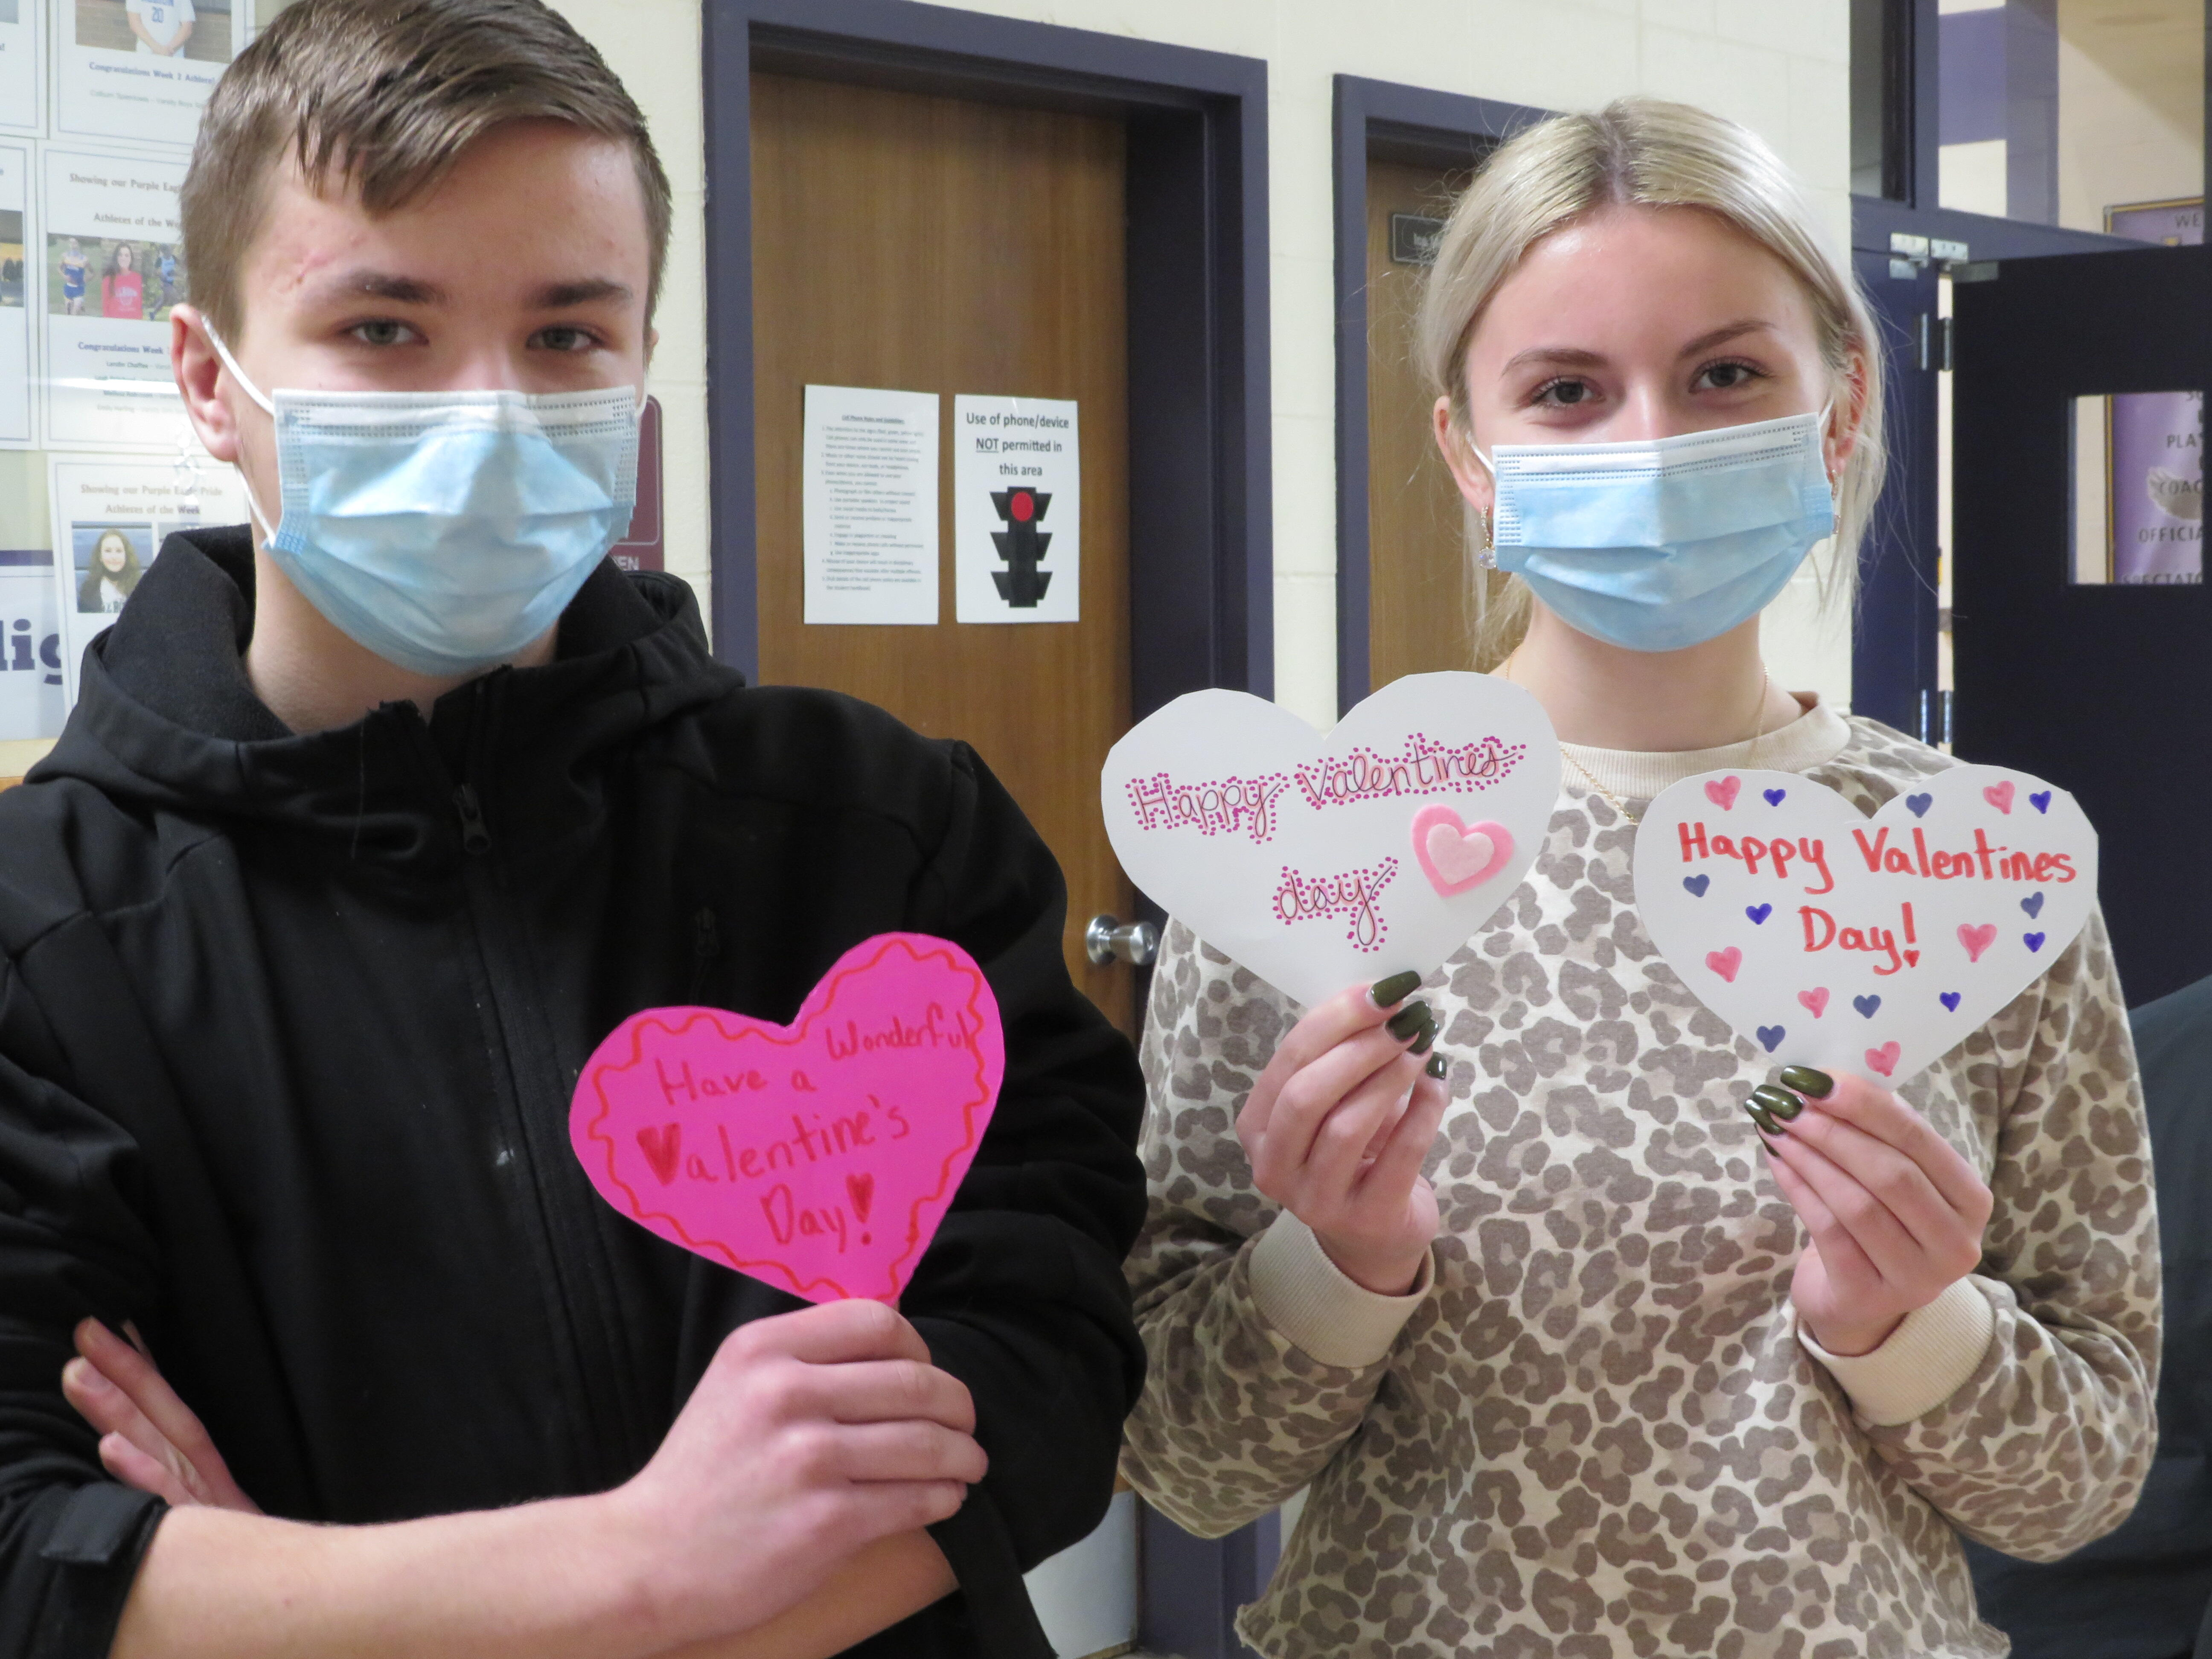 Owen Hunt (left) and Brittany Spies-Hunt (right) holding up valentines they made for the community.